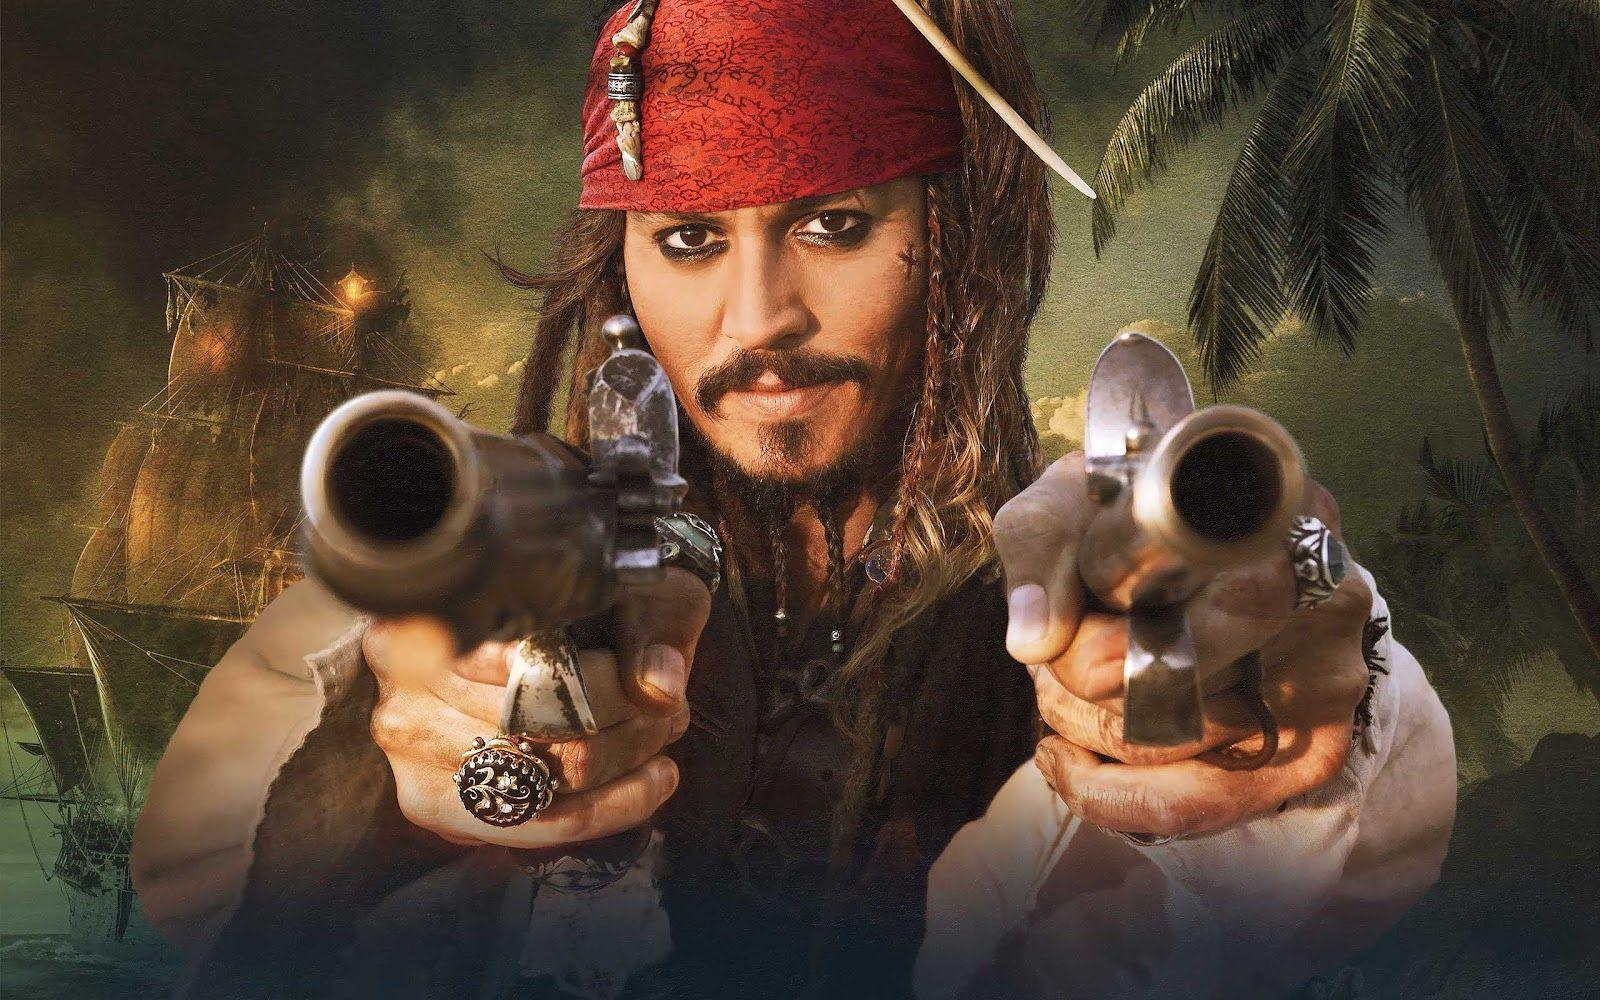 99walls johnny depp in pirates of the caribbean wallpapers